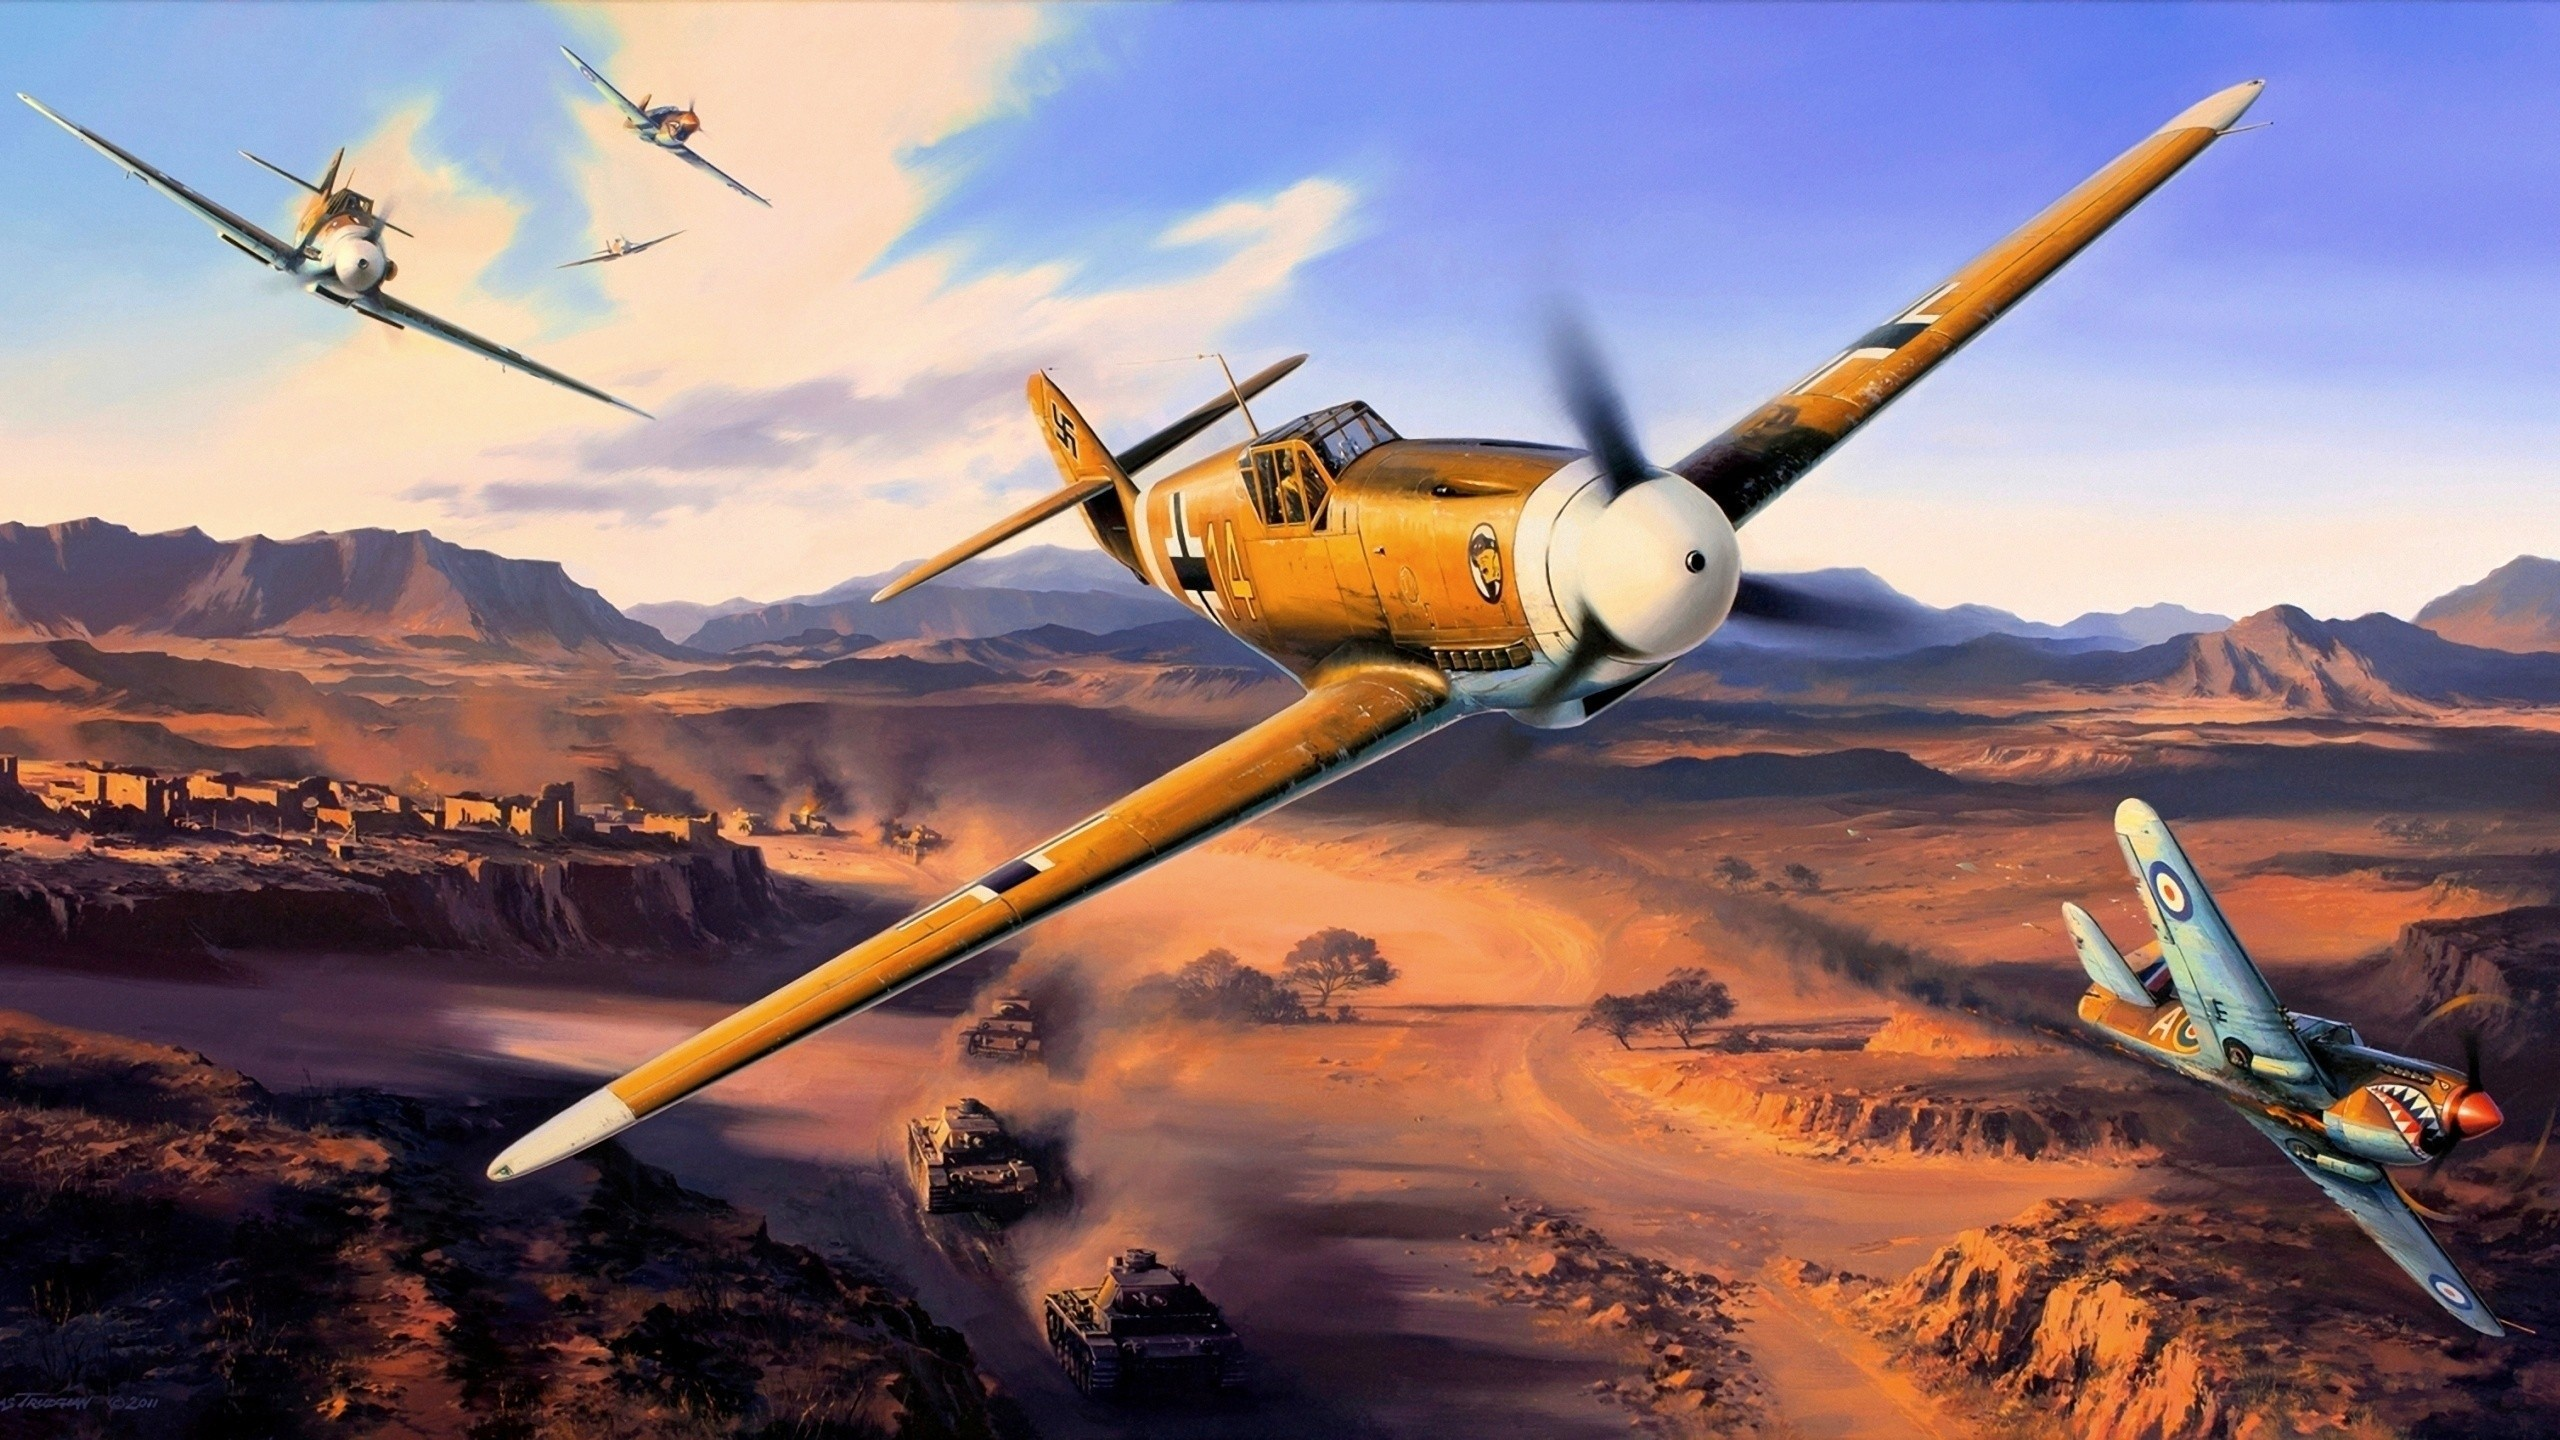 Hd Ww2 Plane Wallpapers 74 Images